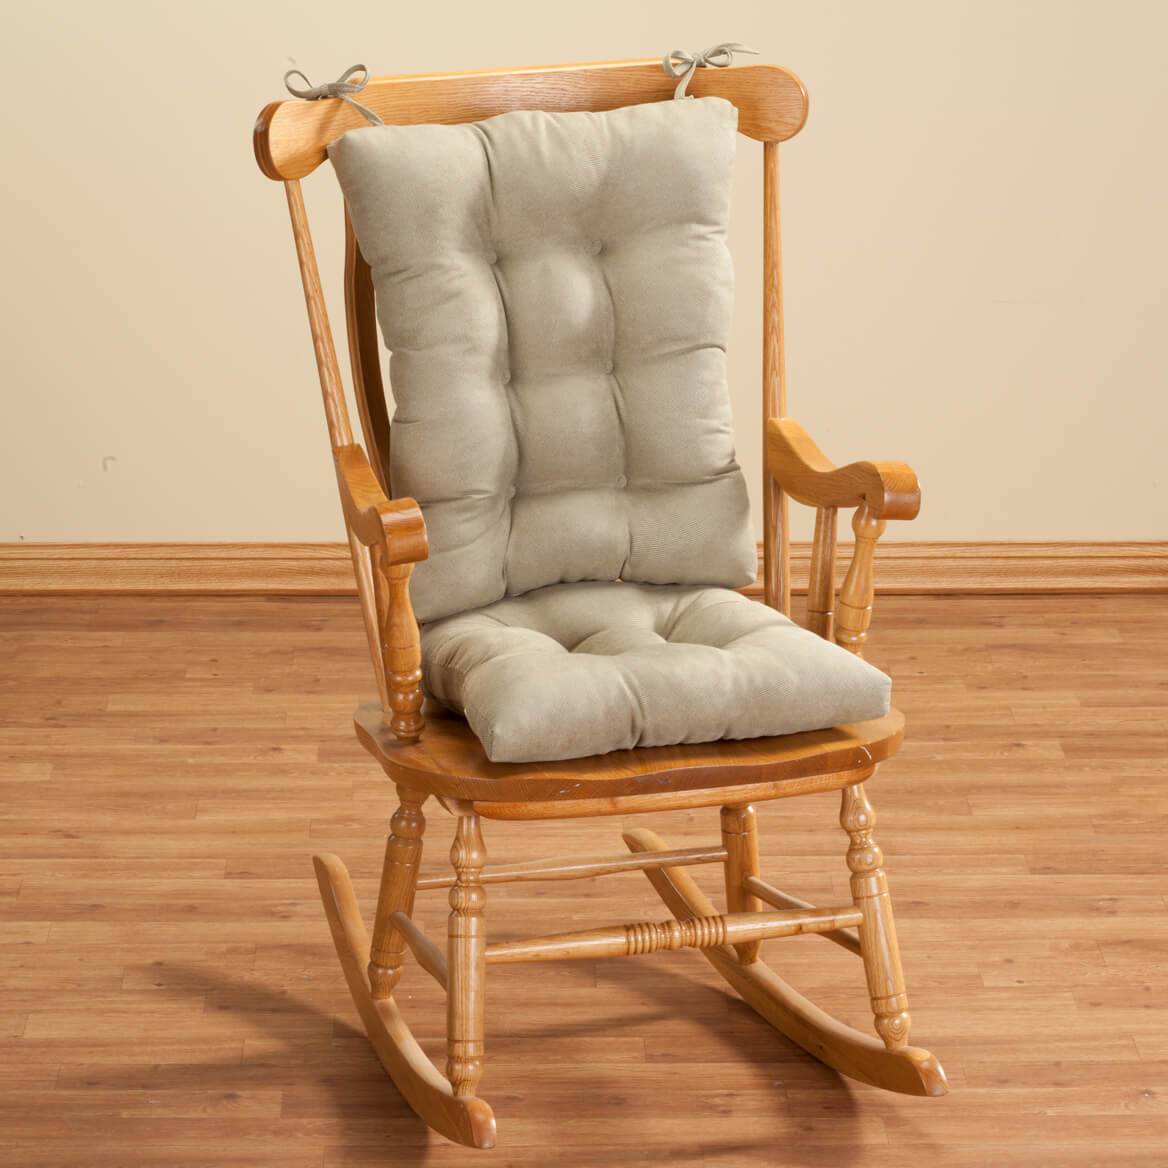 Rocking Chair With Cushions Twillo Rocking Chair Cushion Set Rocking Chair Cushion